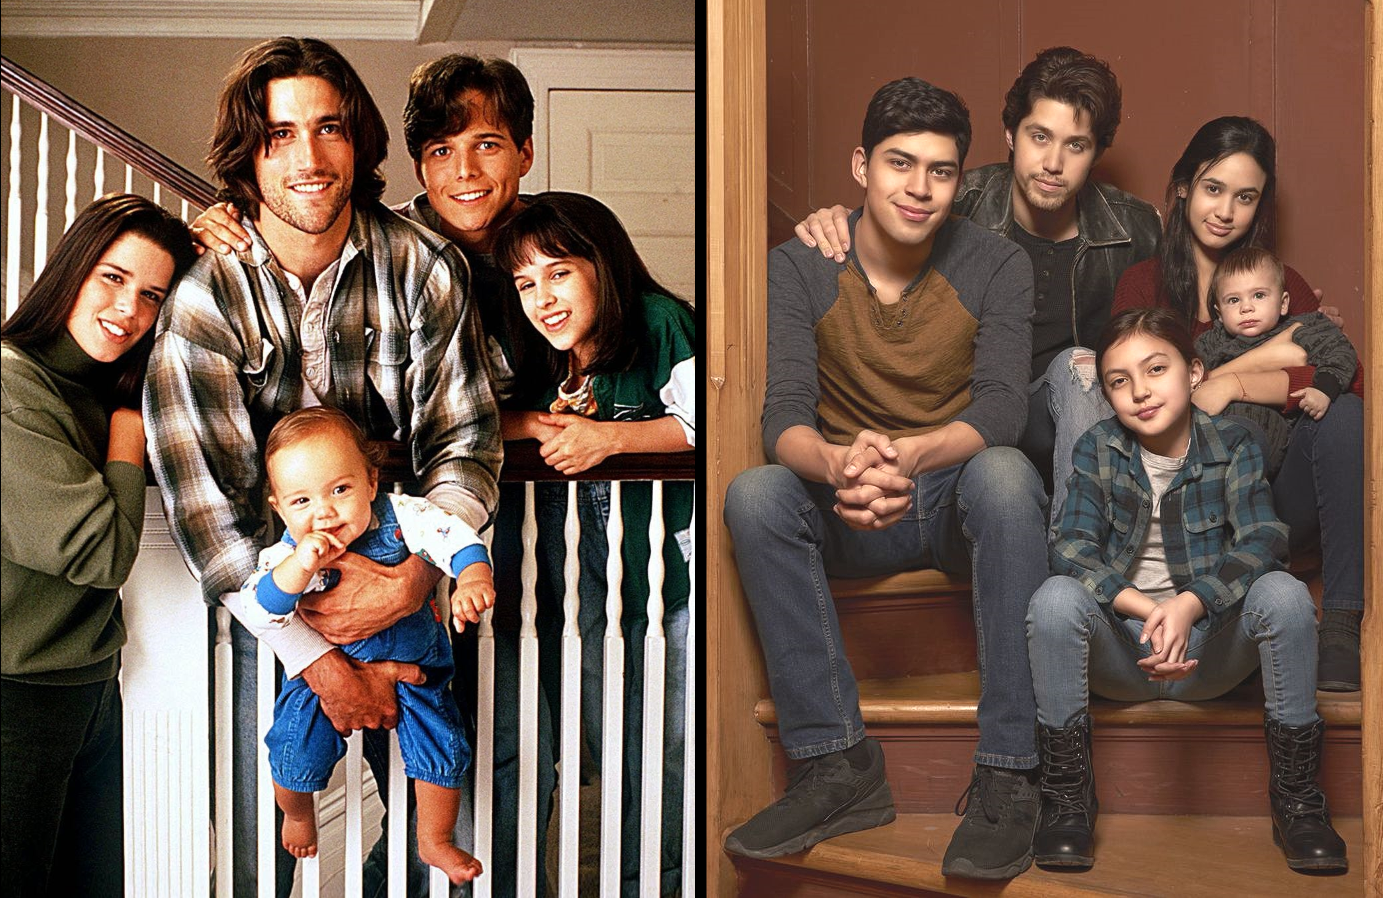 Then and now. The requisite family photo on the stairs.(FOX/Freeform)